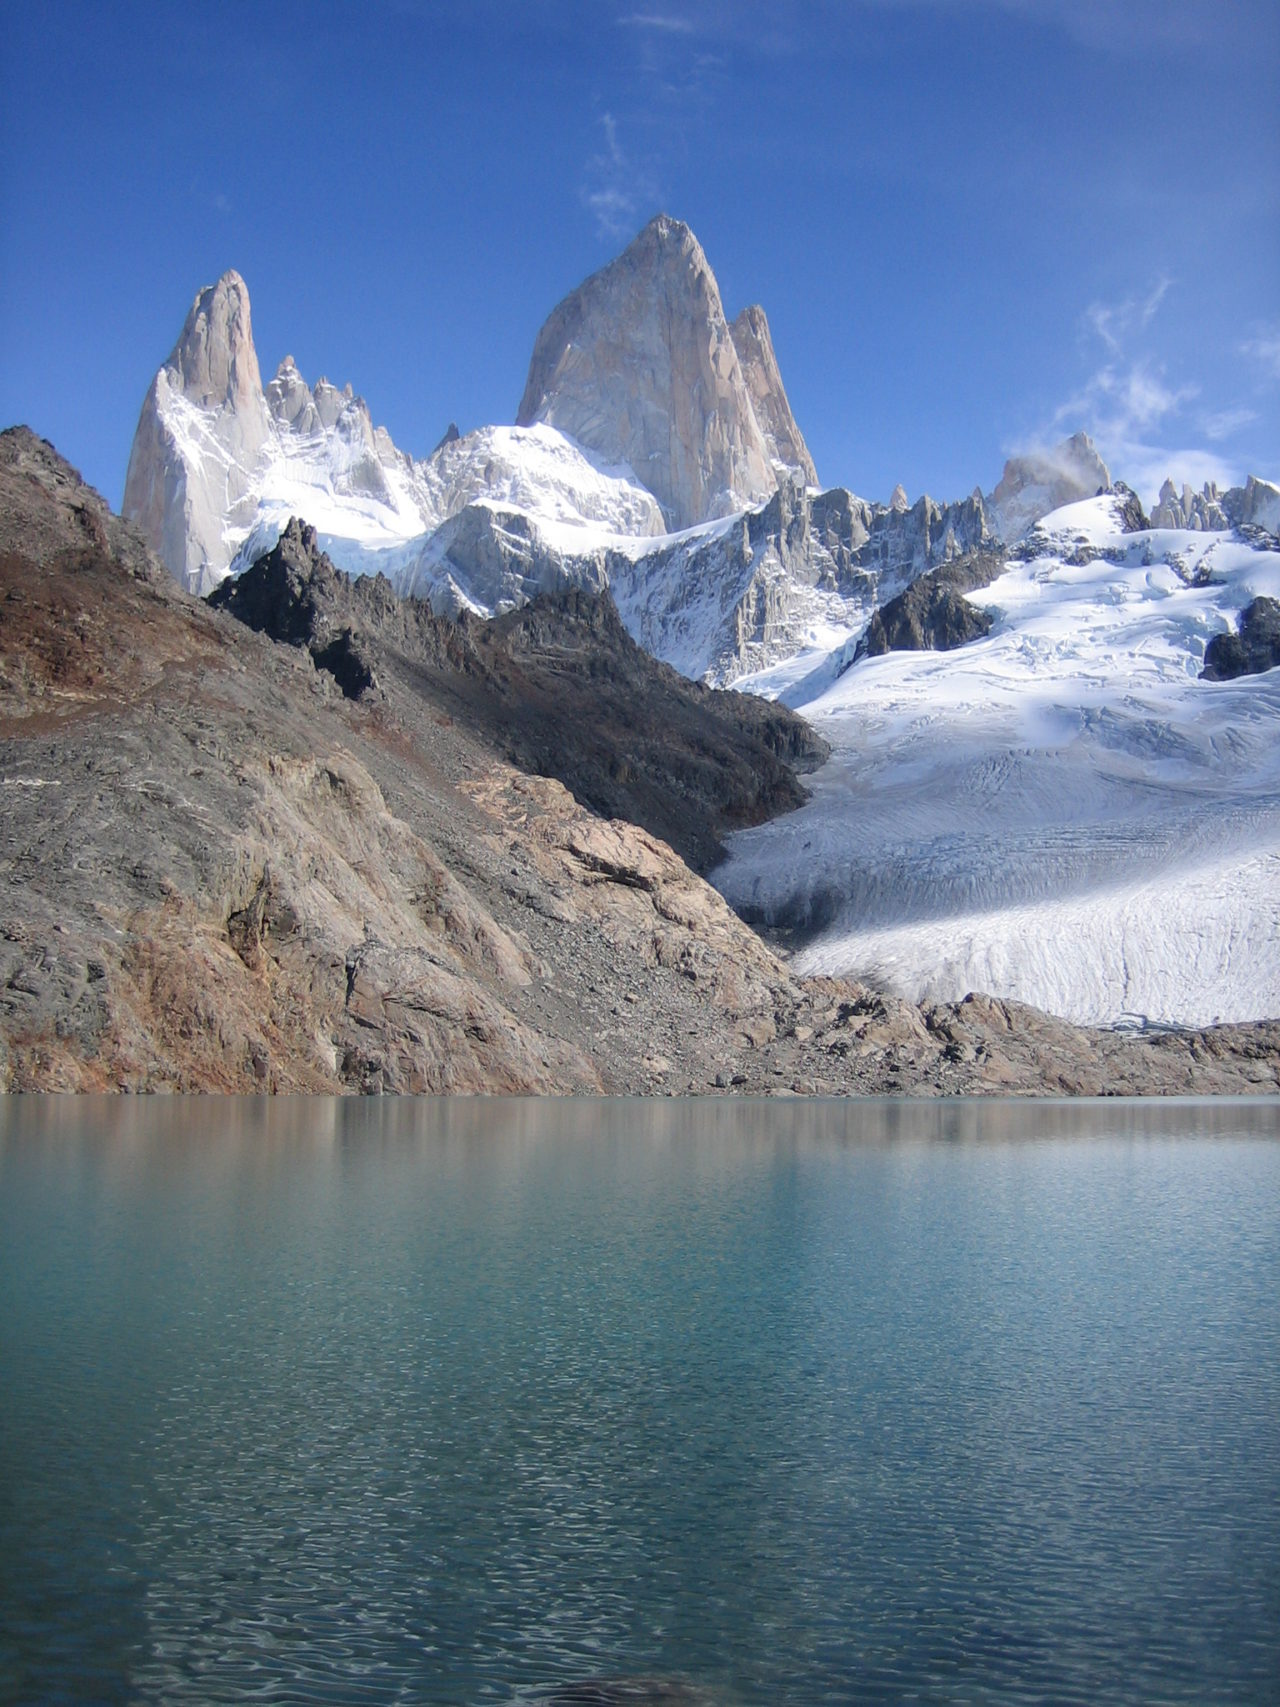 Monts Fitz Roy, Patagonia, Argentina.